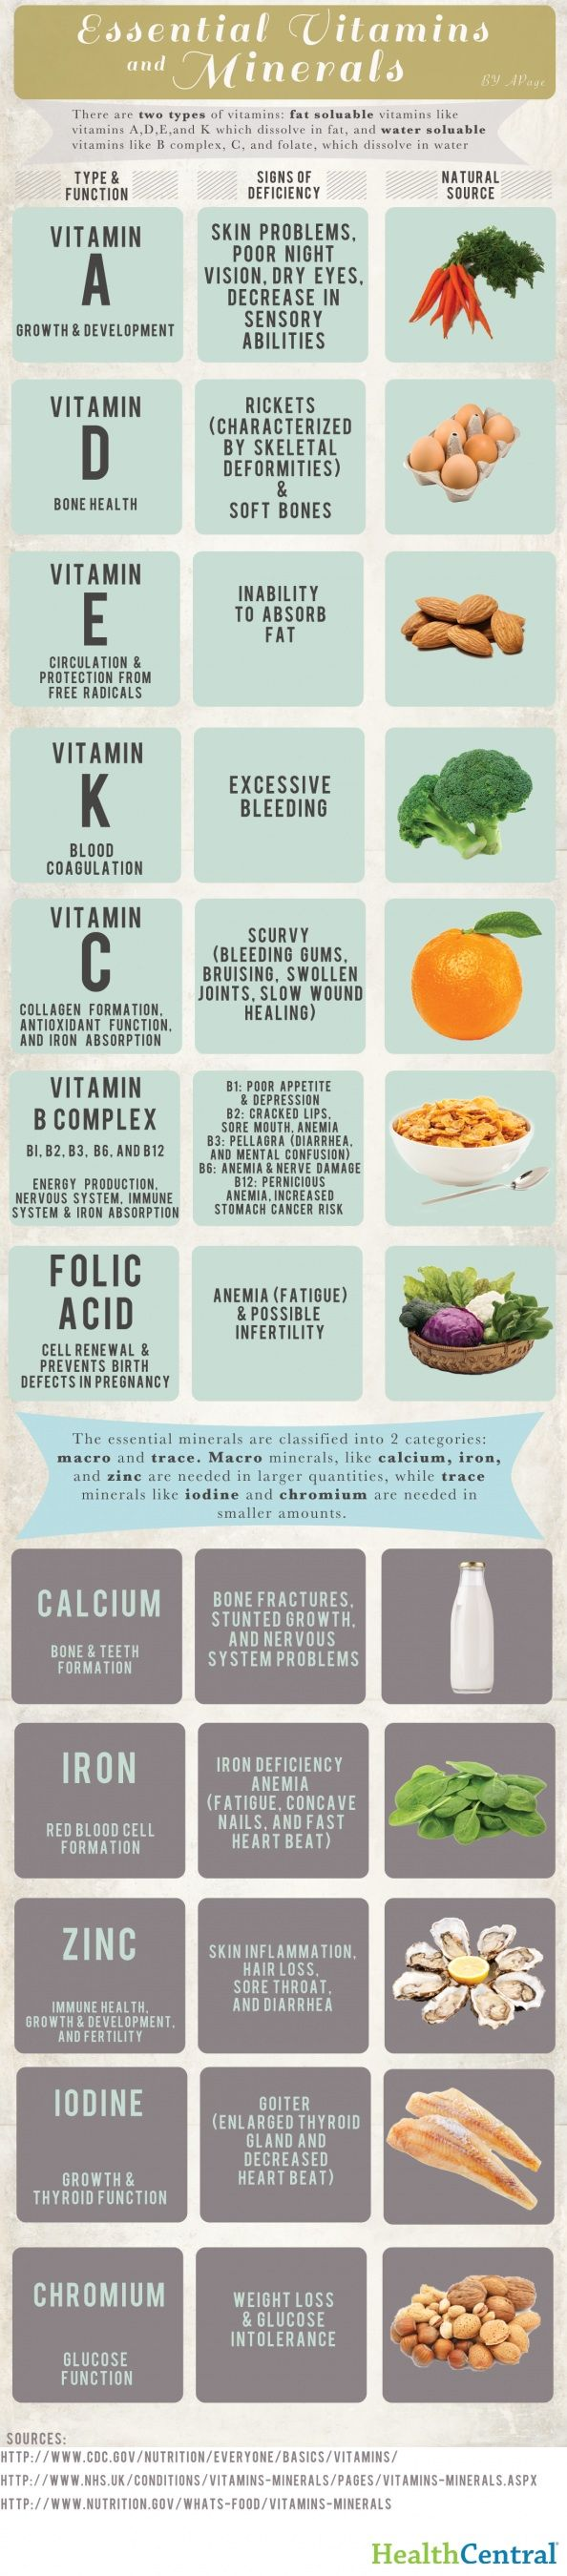 Essential Vitamins and Minerals [infographic]